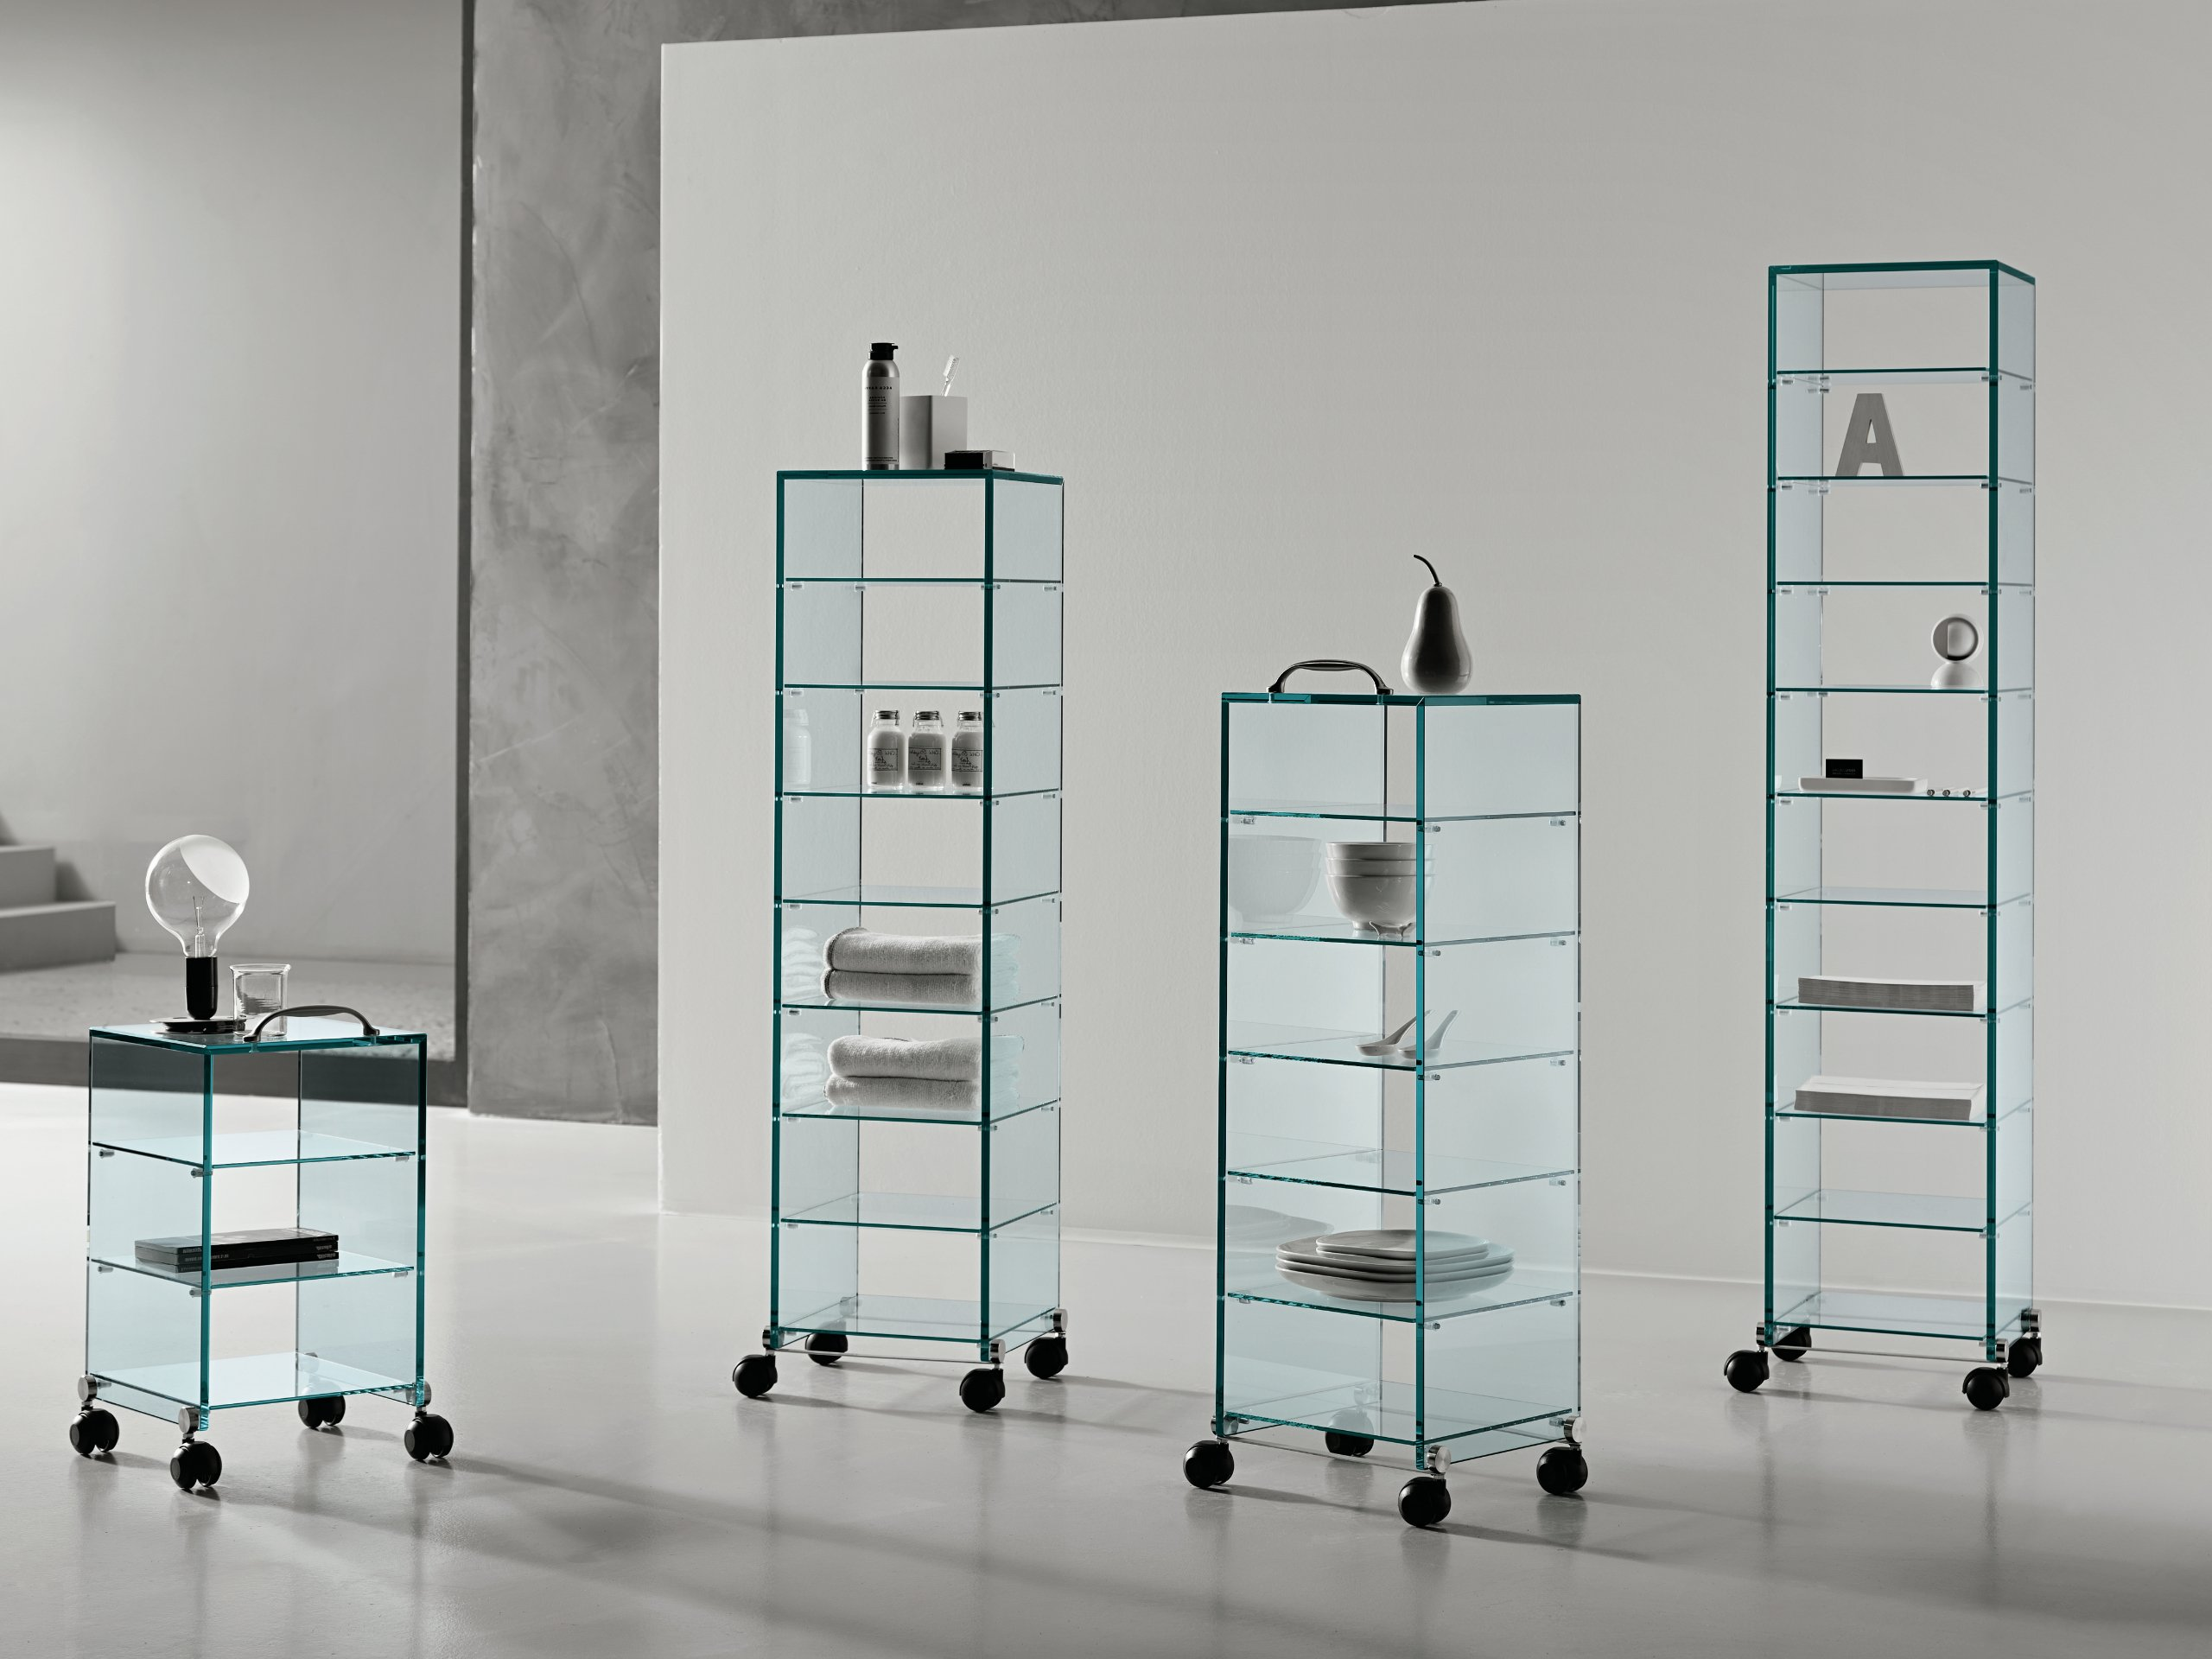 vitrine en verre roulettes dappertutto by t d tonelli design design marco gaudenzi. Black Bedroom Furniture Sets. Home Design Ideas